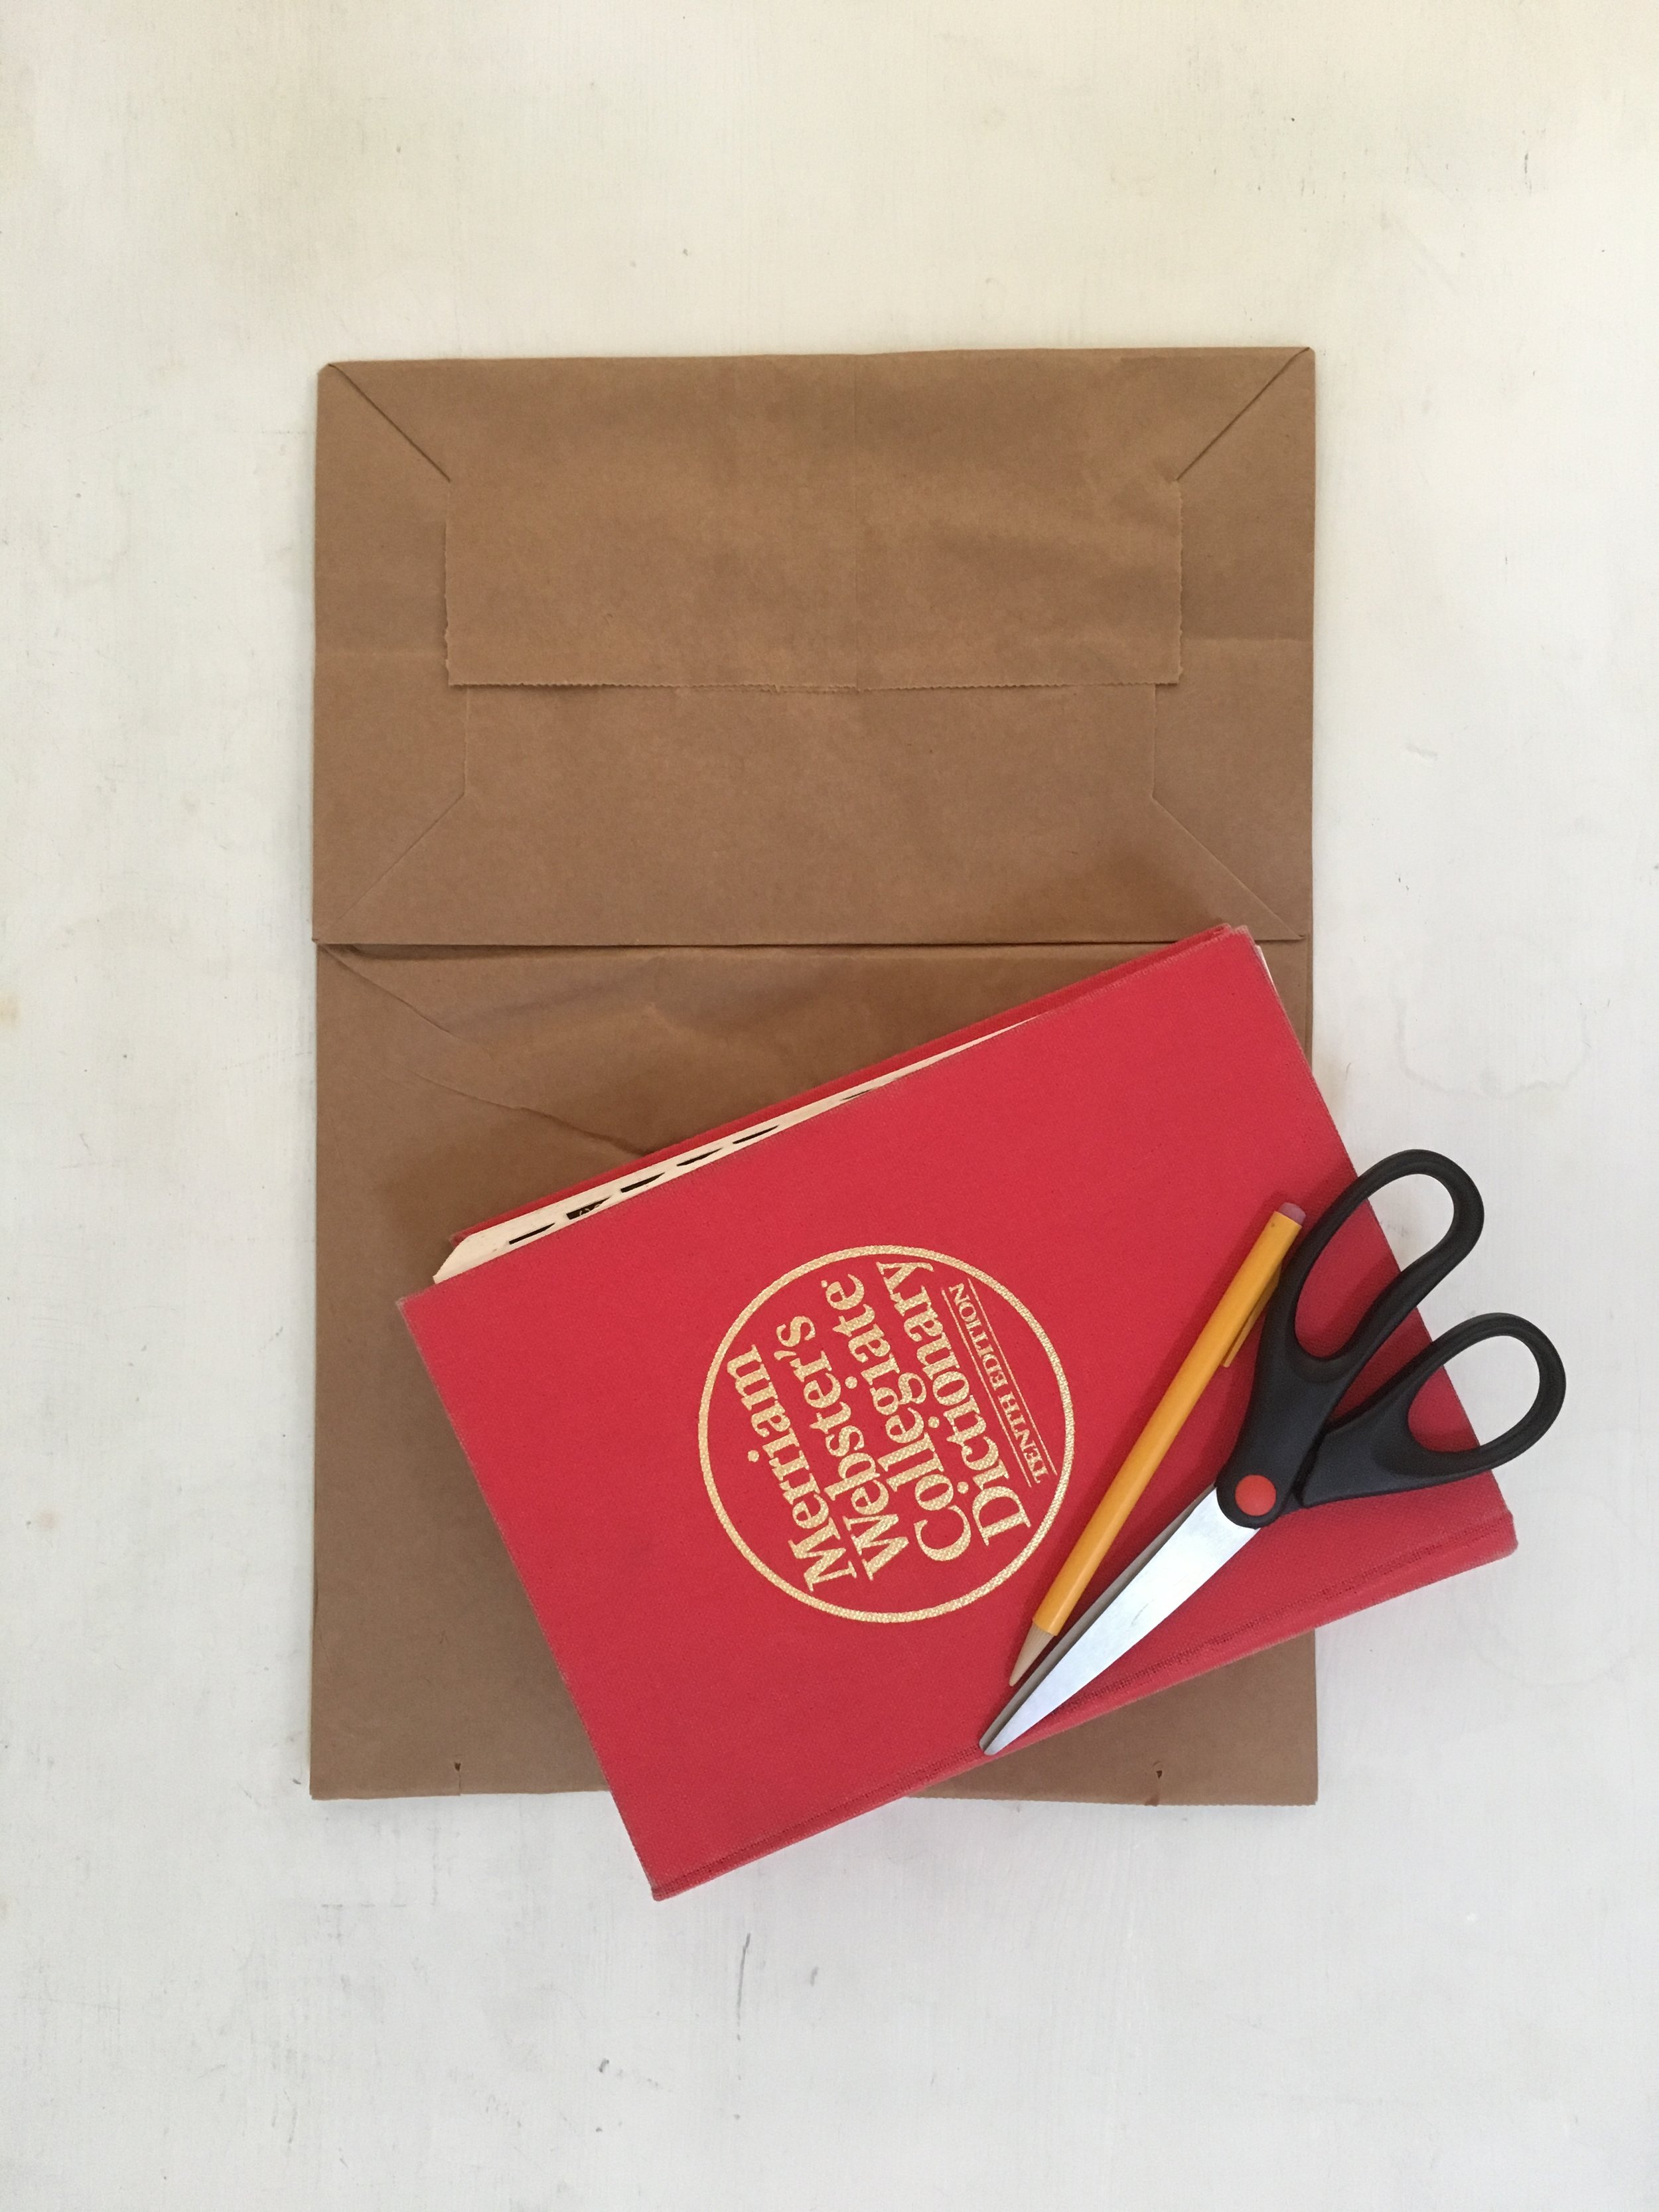 Brown paper grocery bag with dictionary and scissors